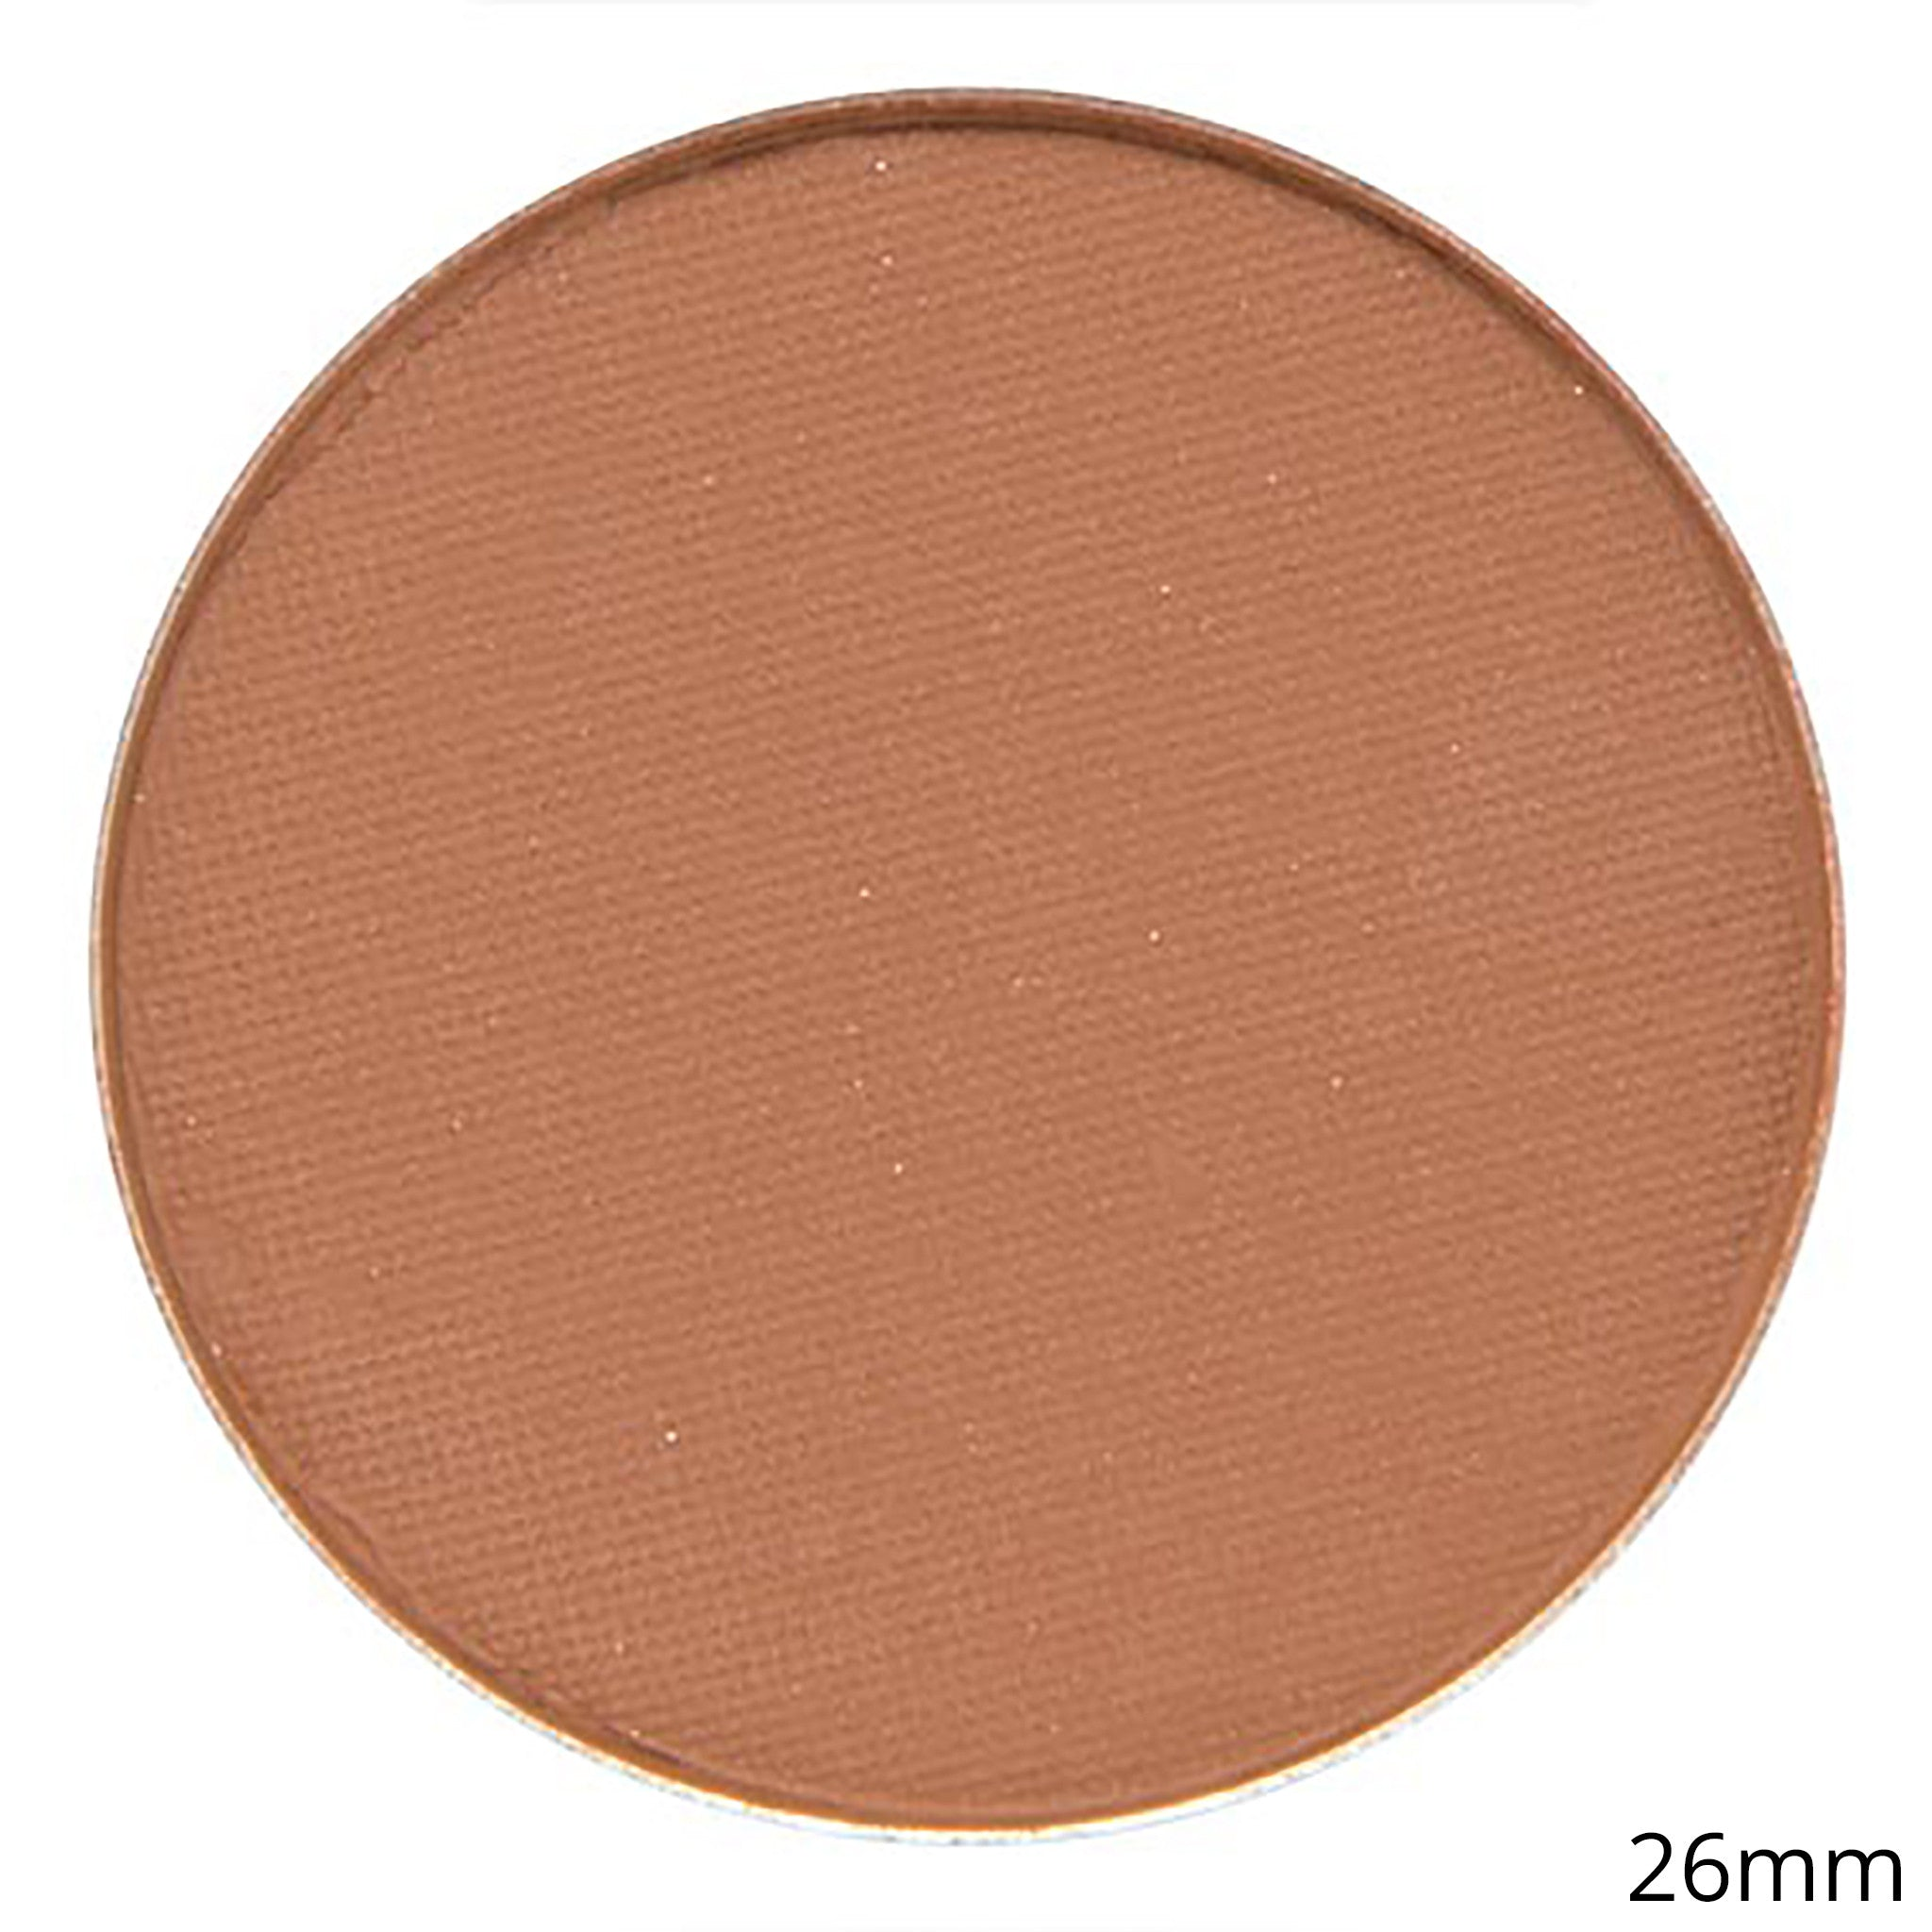 Single Eyeshadow - Barista Hot Pot by Coastal Scents